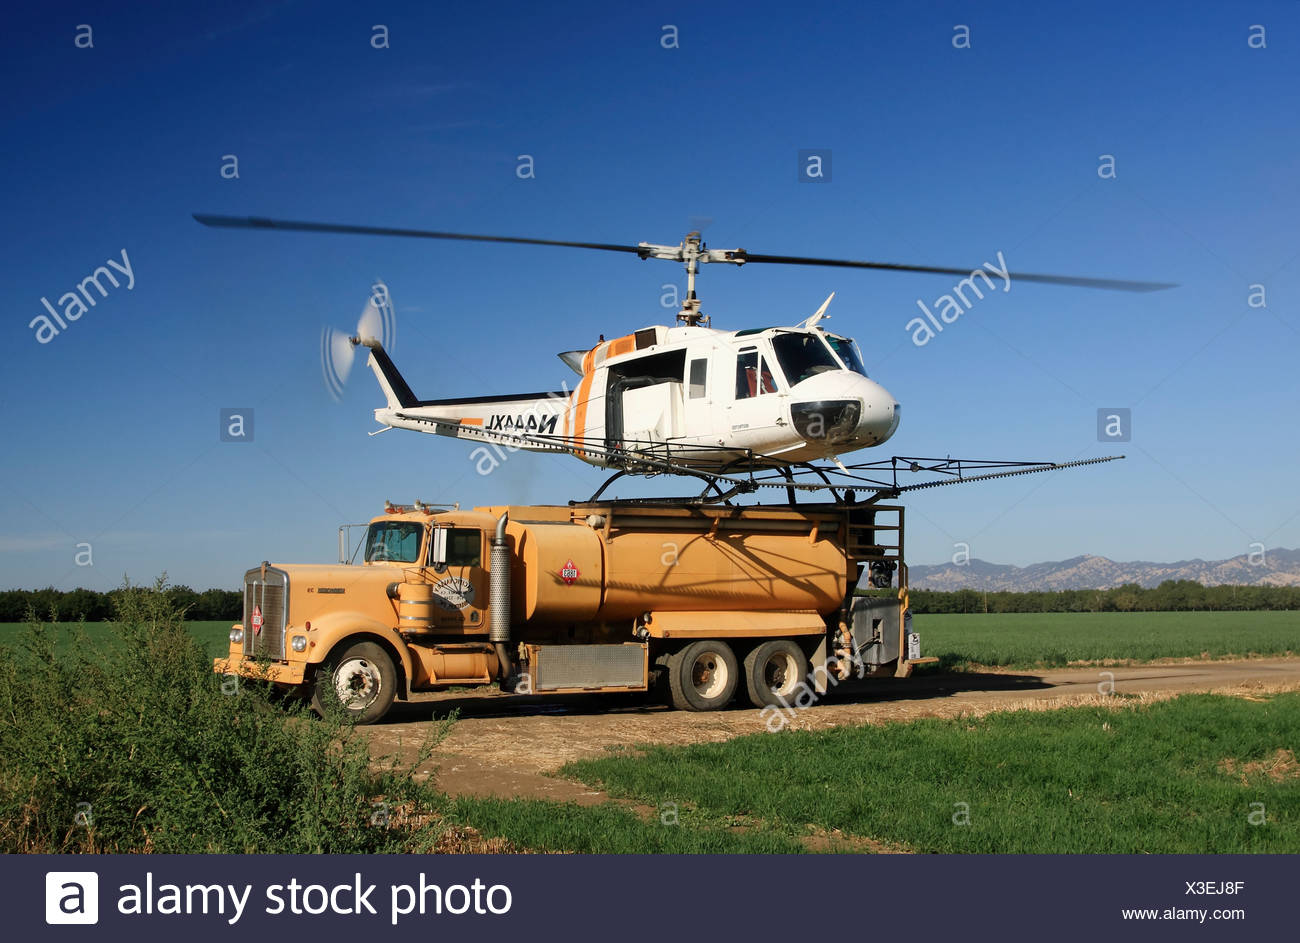 Helicopter crop duster lands on the back of a chemical truck to refill the tanks during spraying operations of a walnut orchard. - Stock Image